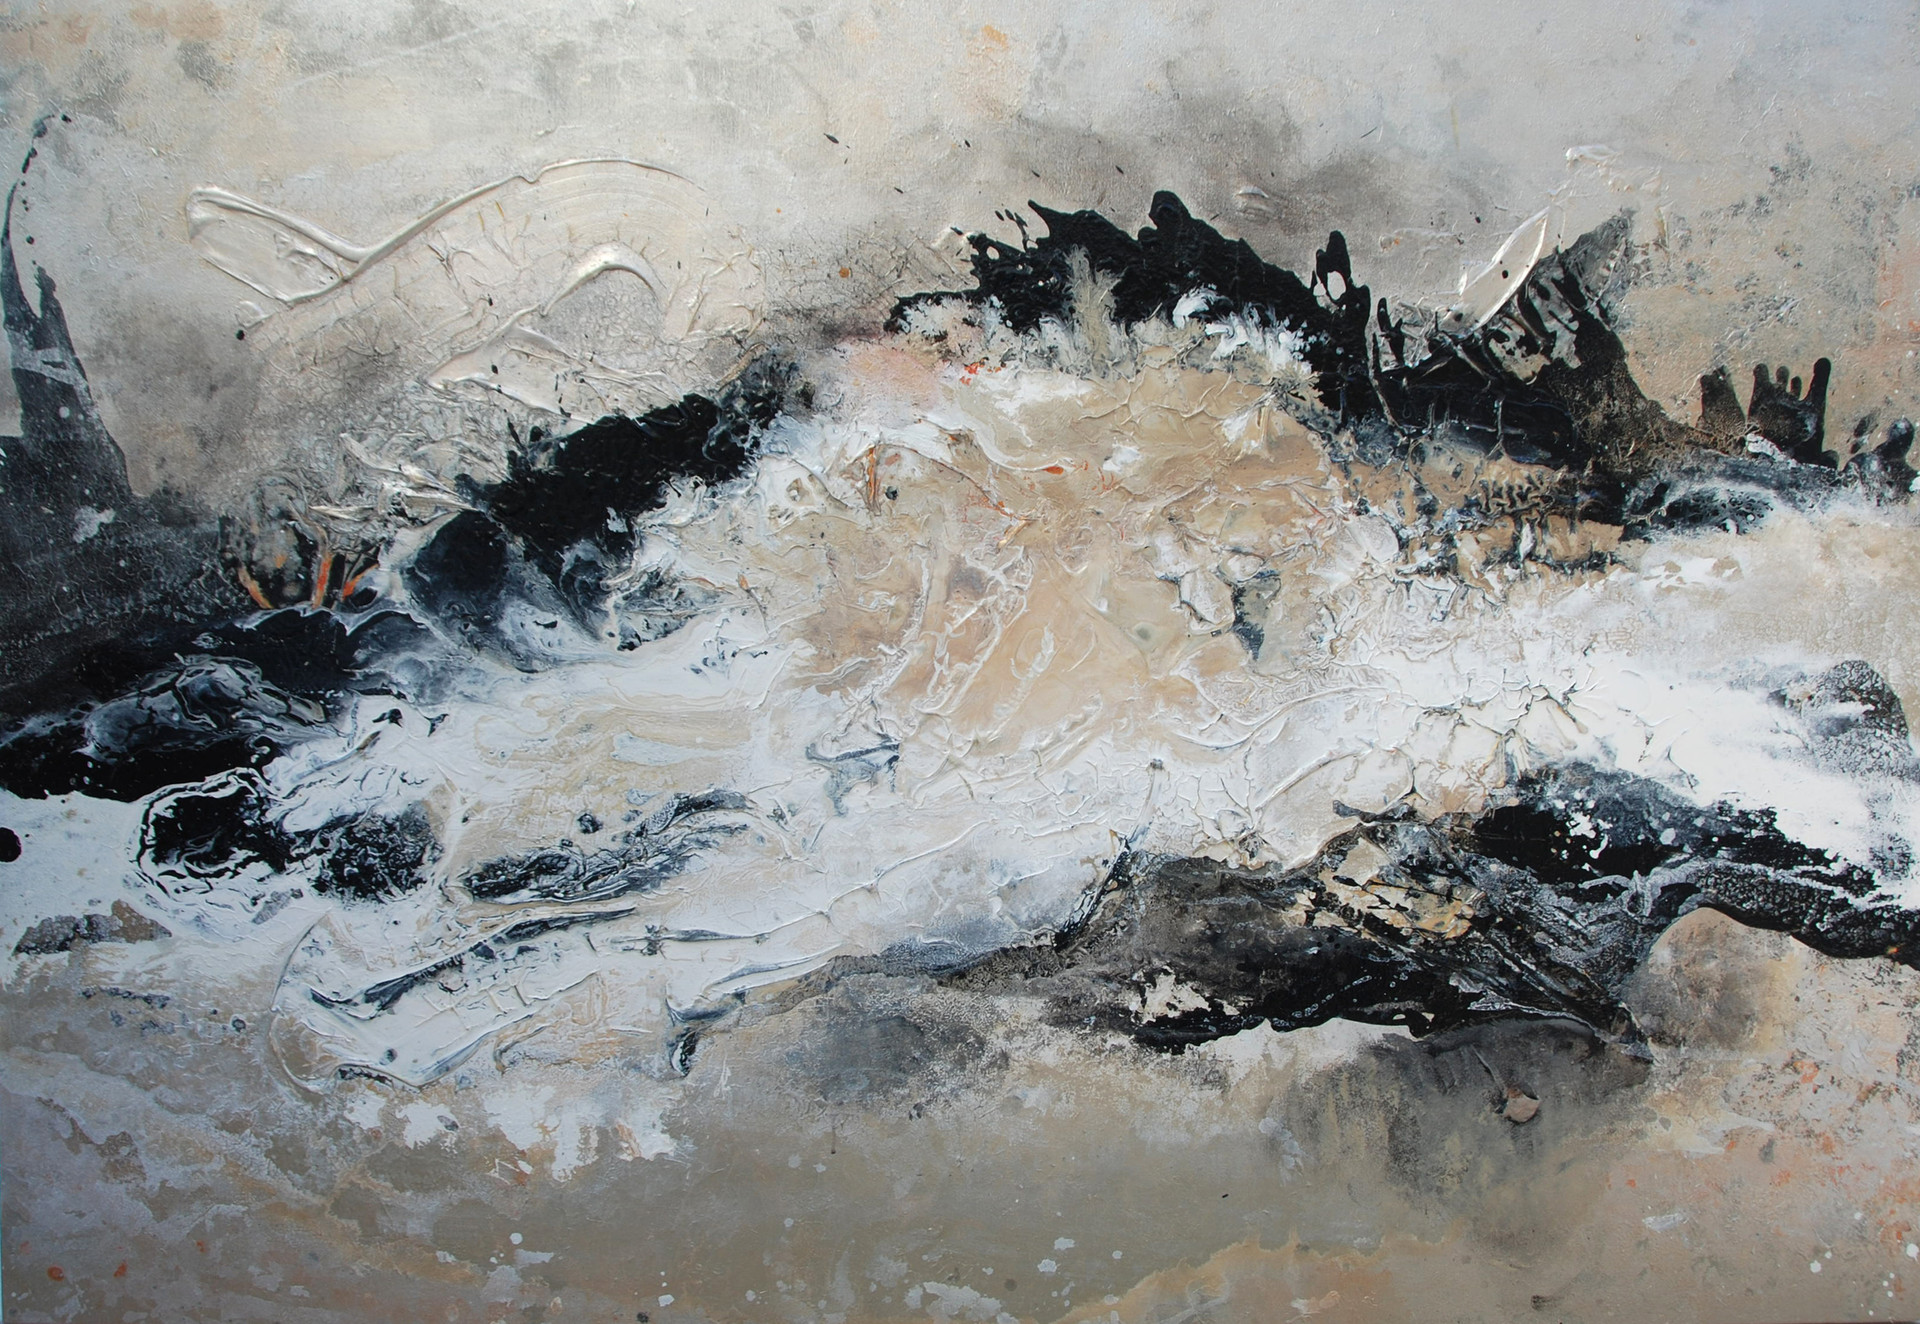 SOUND OF SILENCE 135x200cm mixed media SOLD